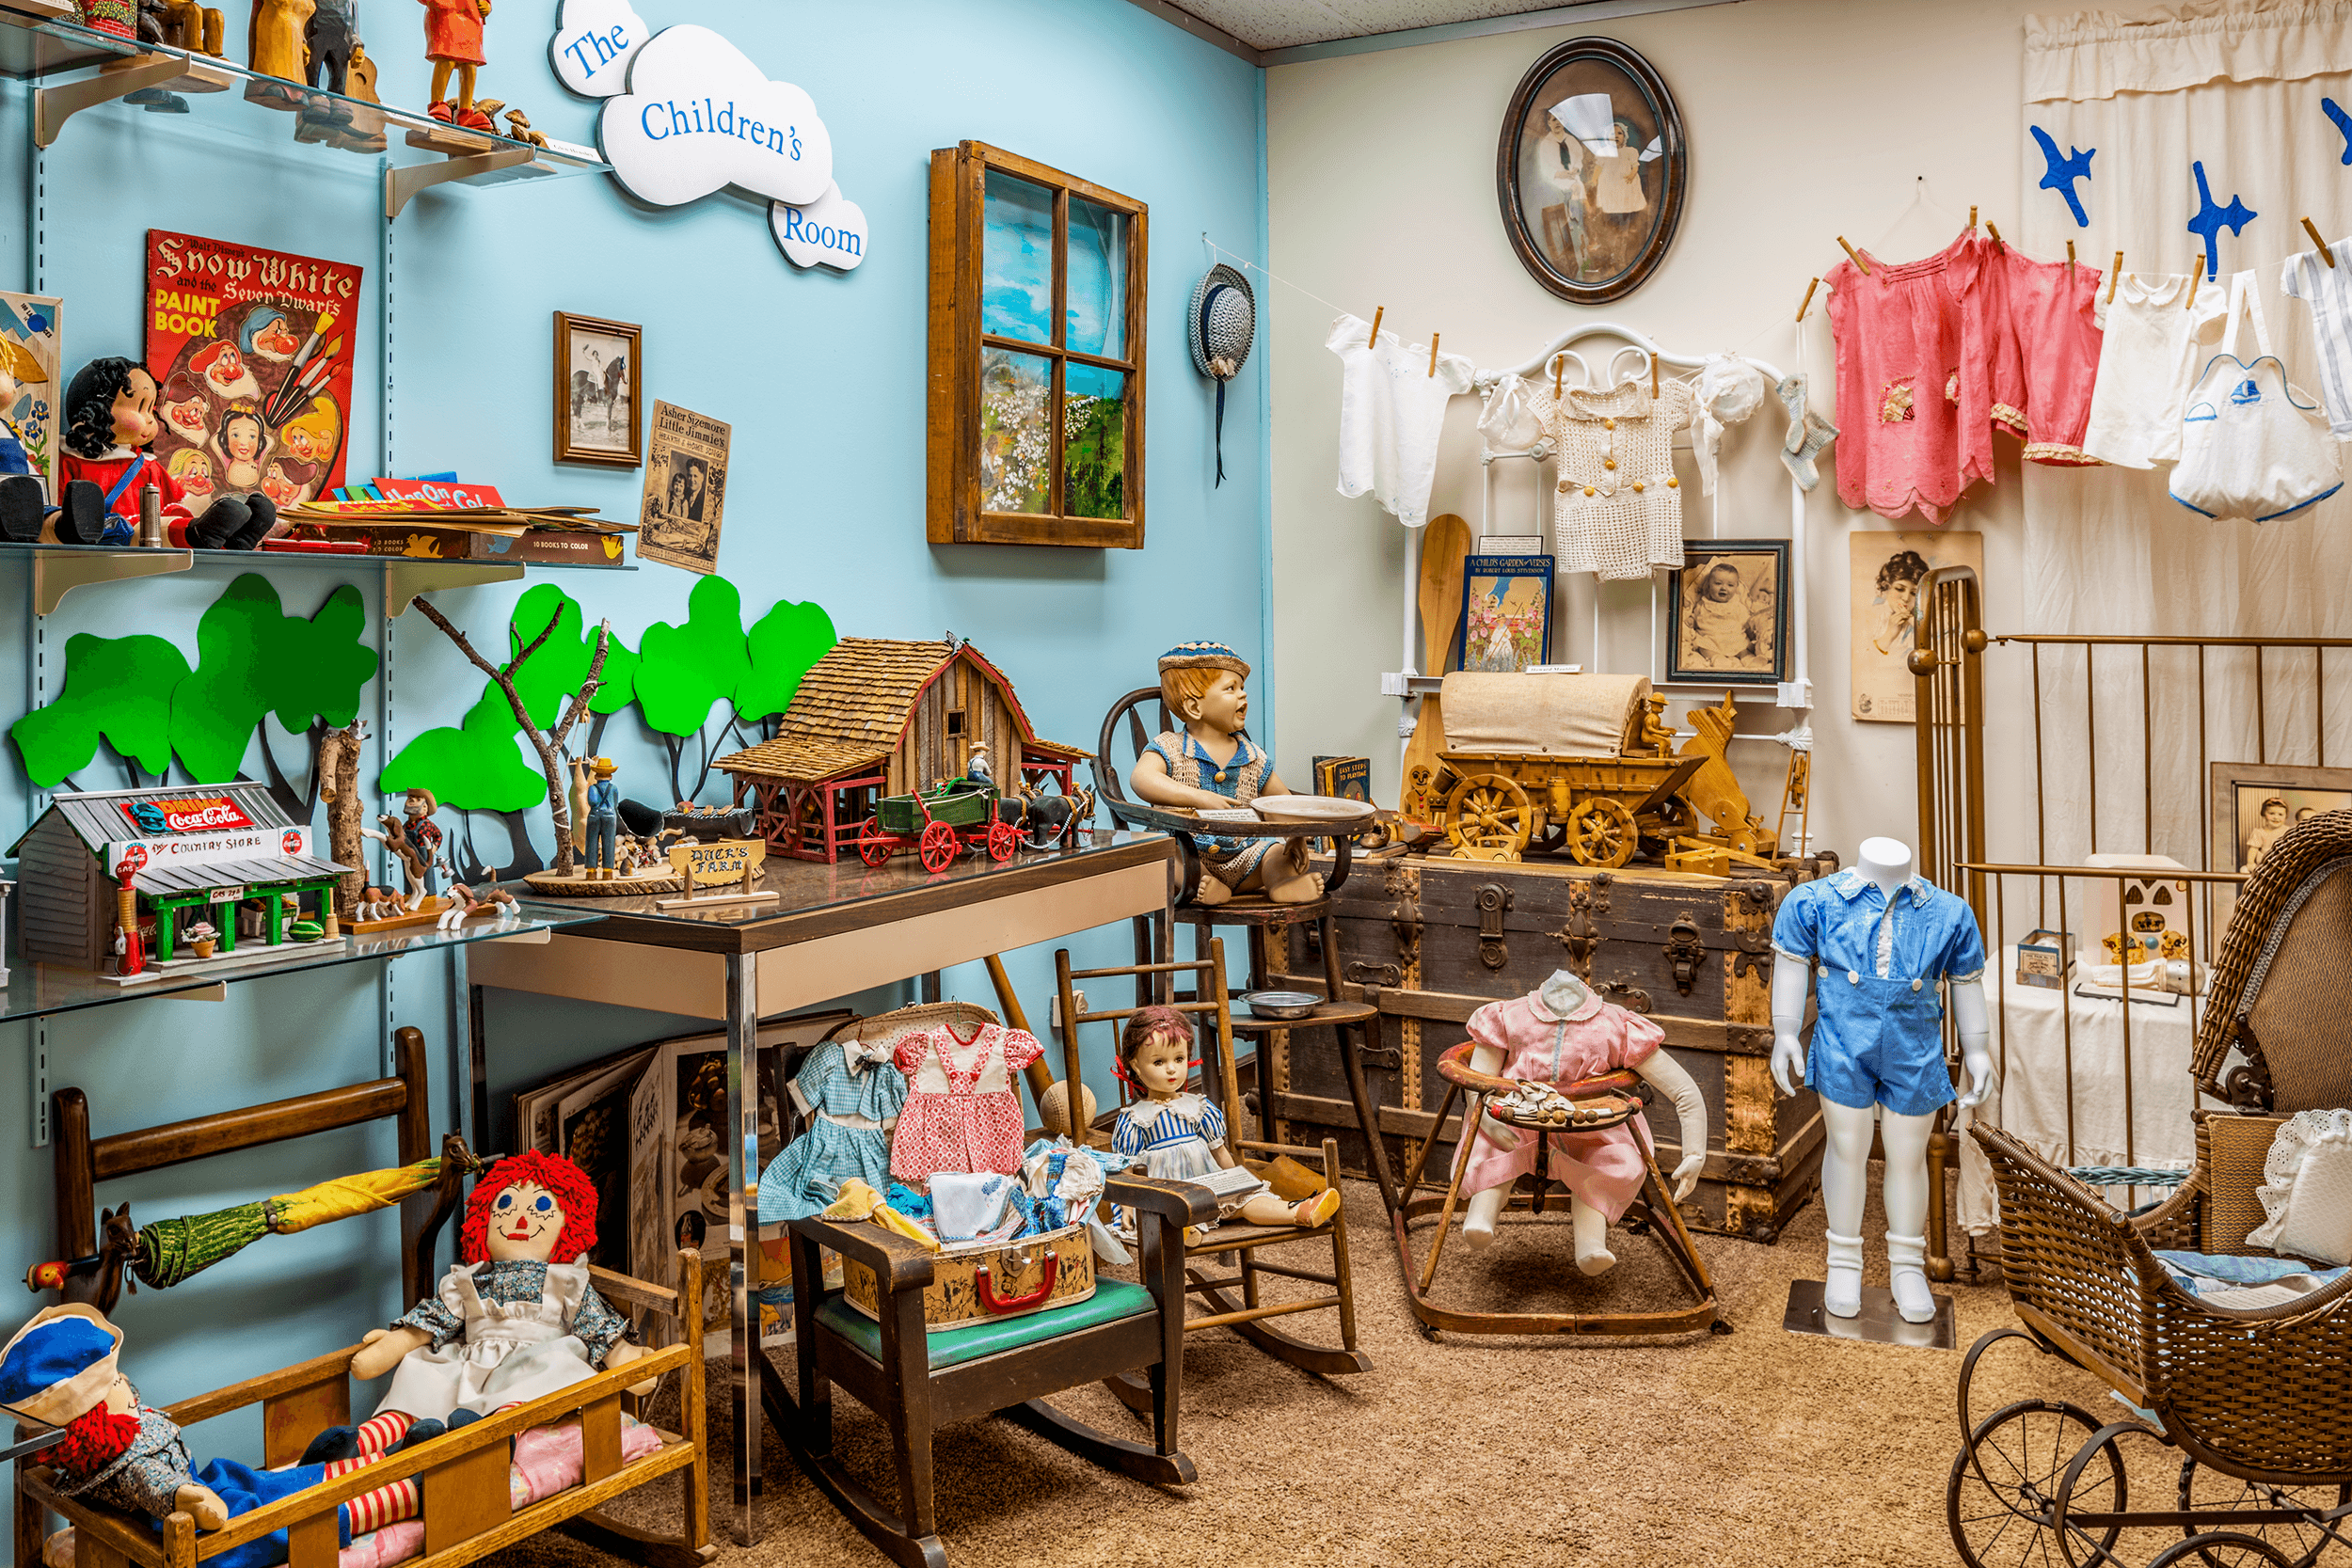 The  Children's Room  displays toys, clothing, and furniture ranging from the 1930s through to the 1970s.